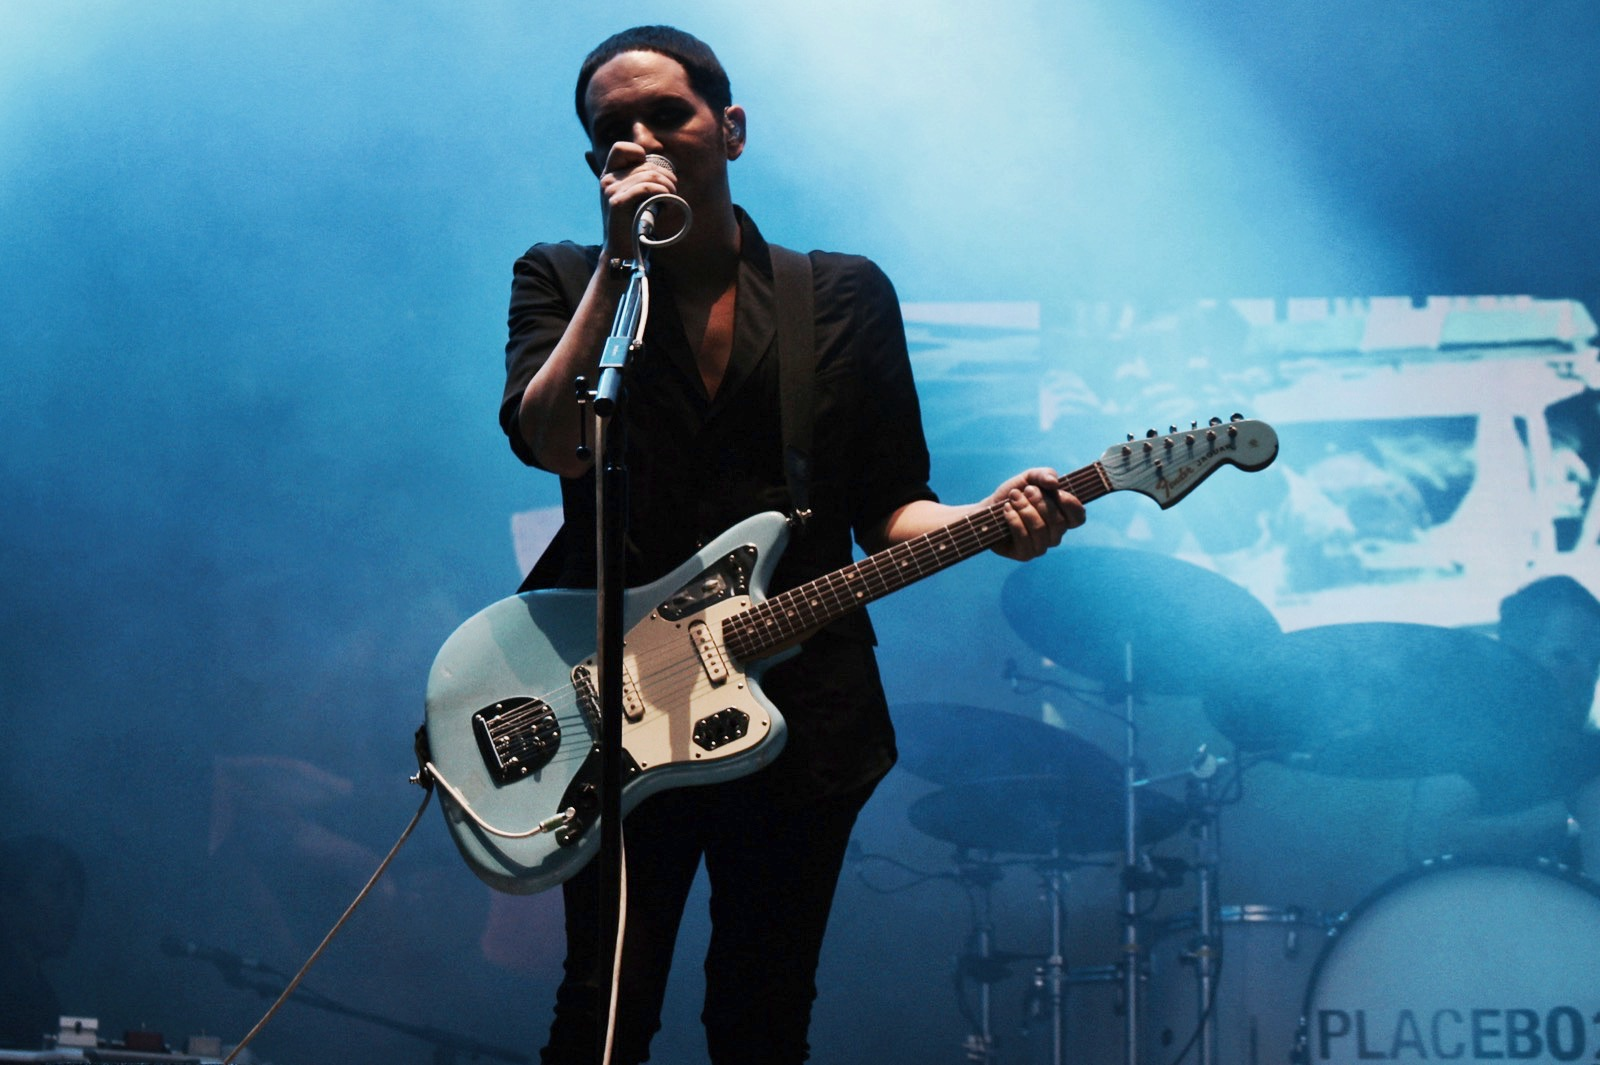 05-Placebo-fm4-frequency-festival-2017-thexed-xedblog